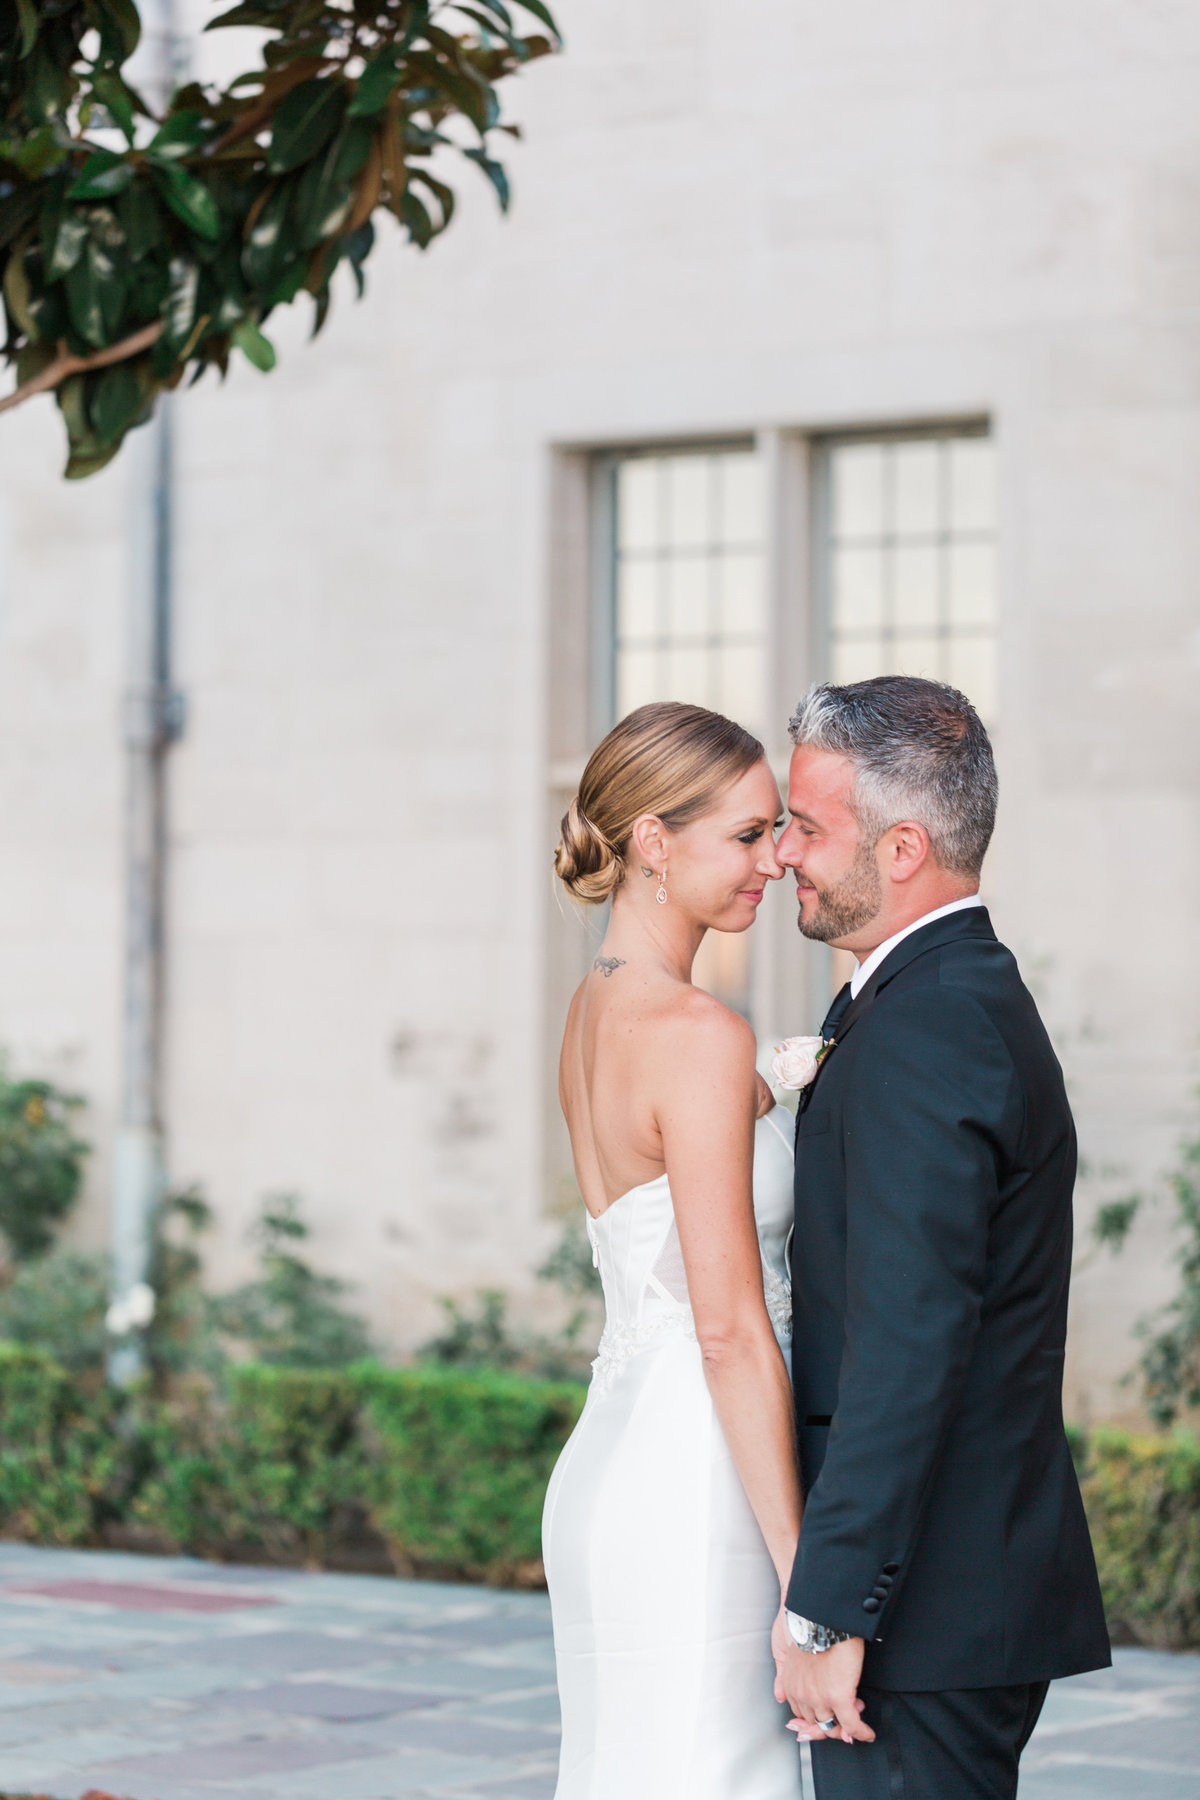 Intimate_Greystone_Mansion_Intimate_Black_Tie_Wedding_Valorie_Darling_Photography - 61 of 70